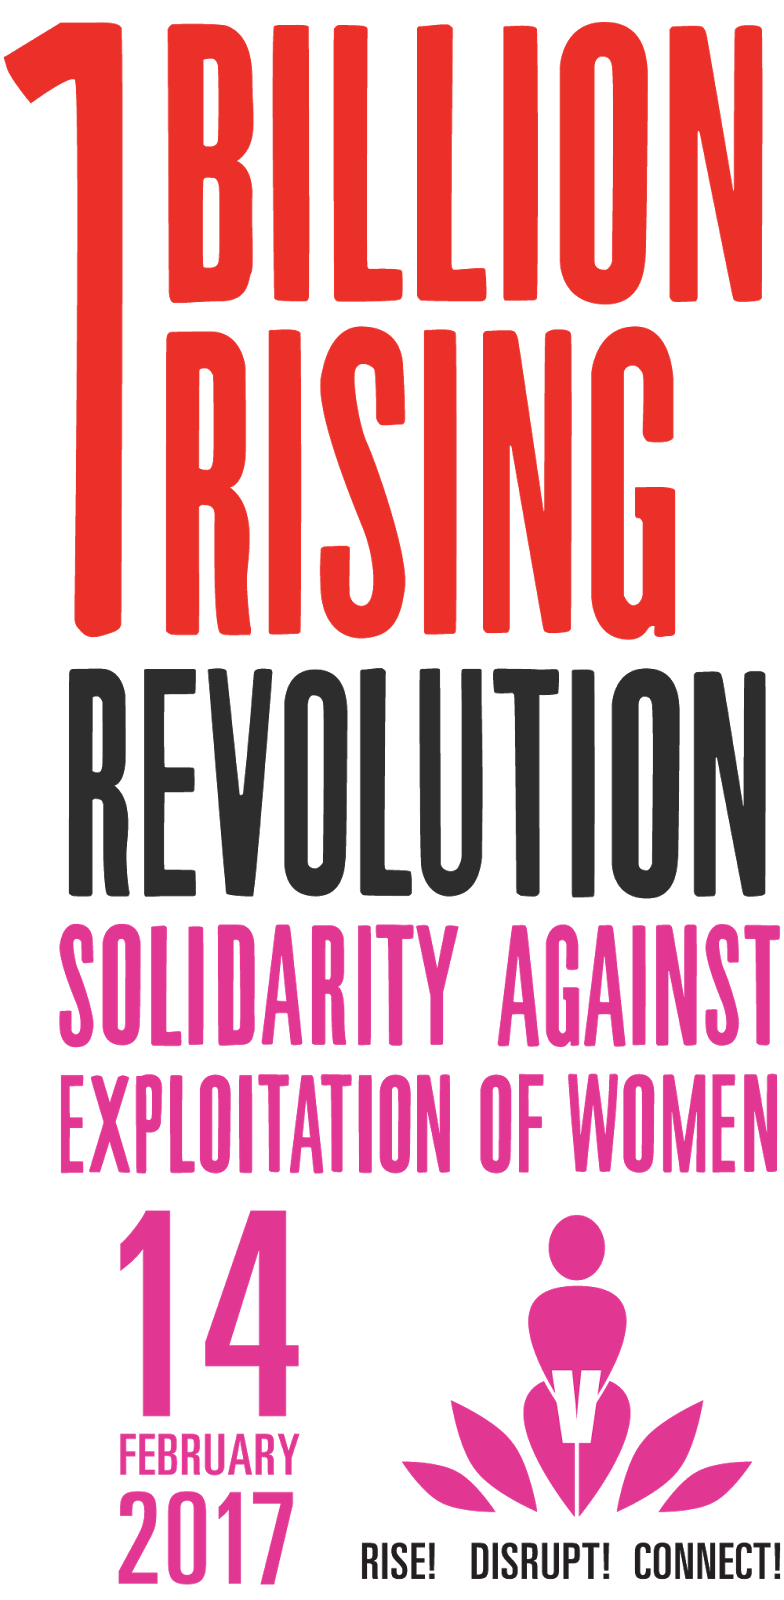 ♥ 1 billion rising